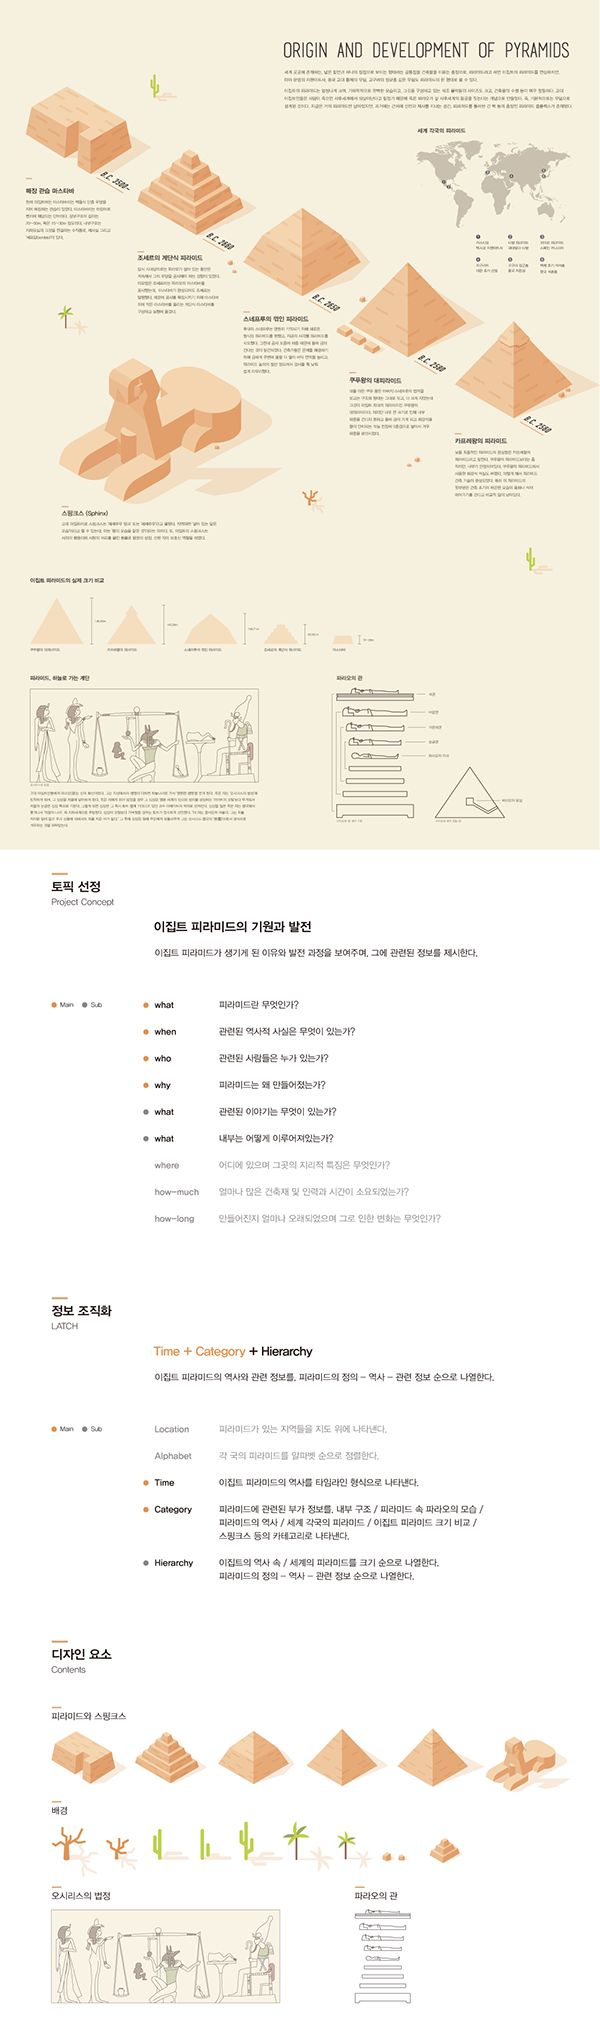 Kim Hansol│ Information Design 2015│ Major in Digital Media Design │#hicoda │hicoda.hongik.ac.kr